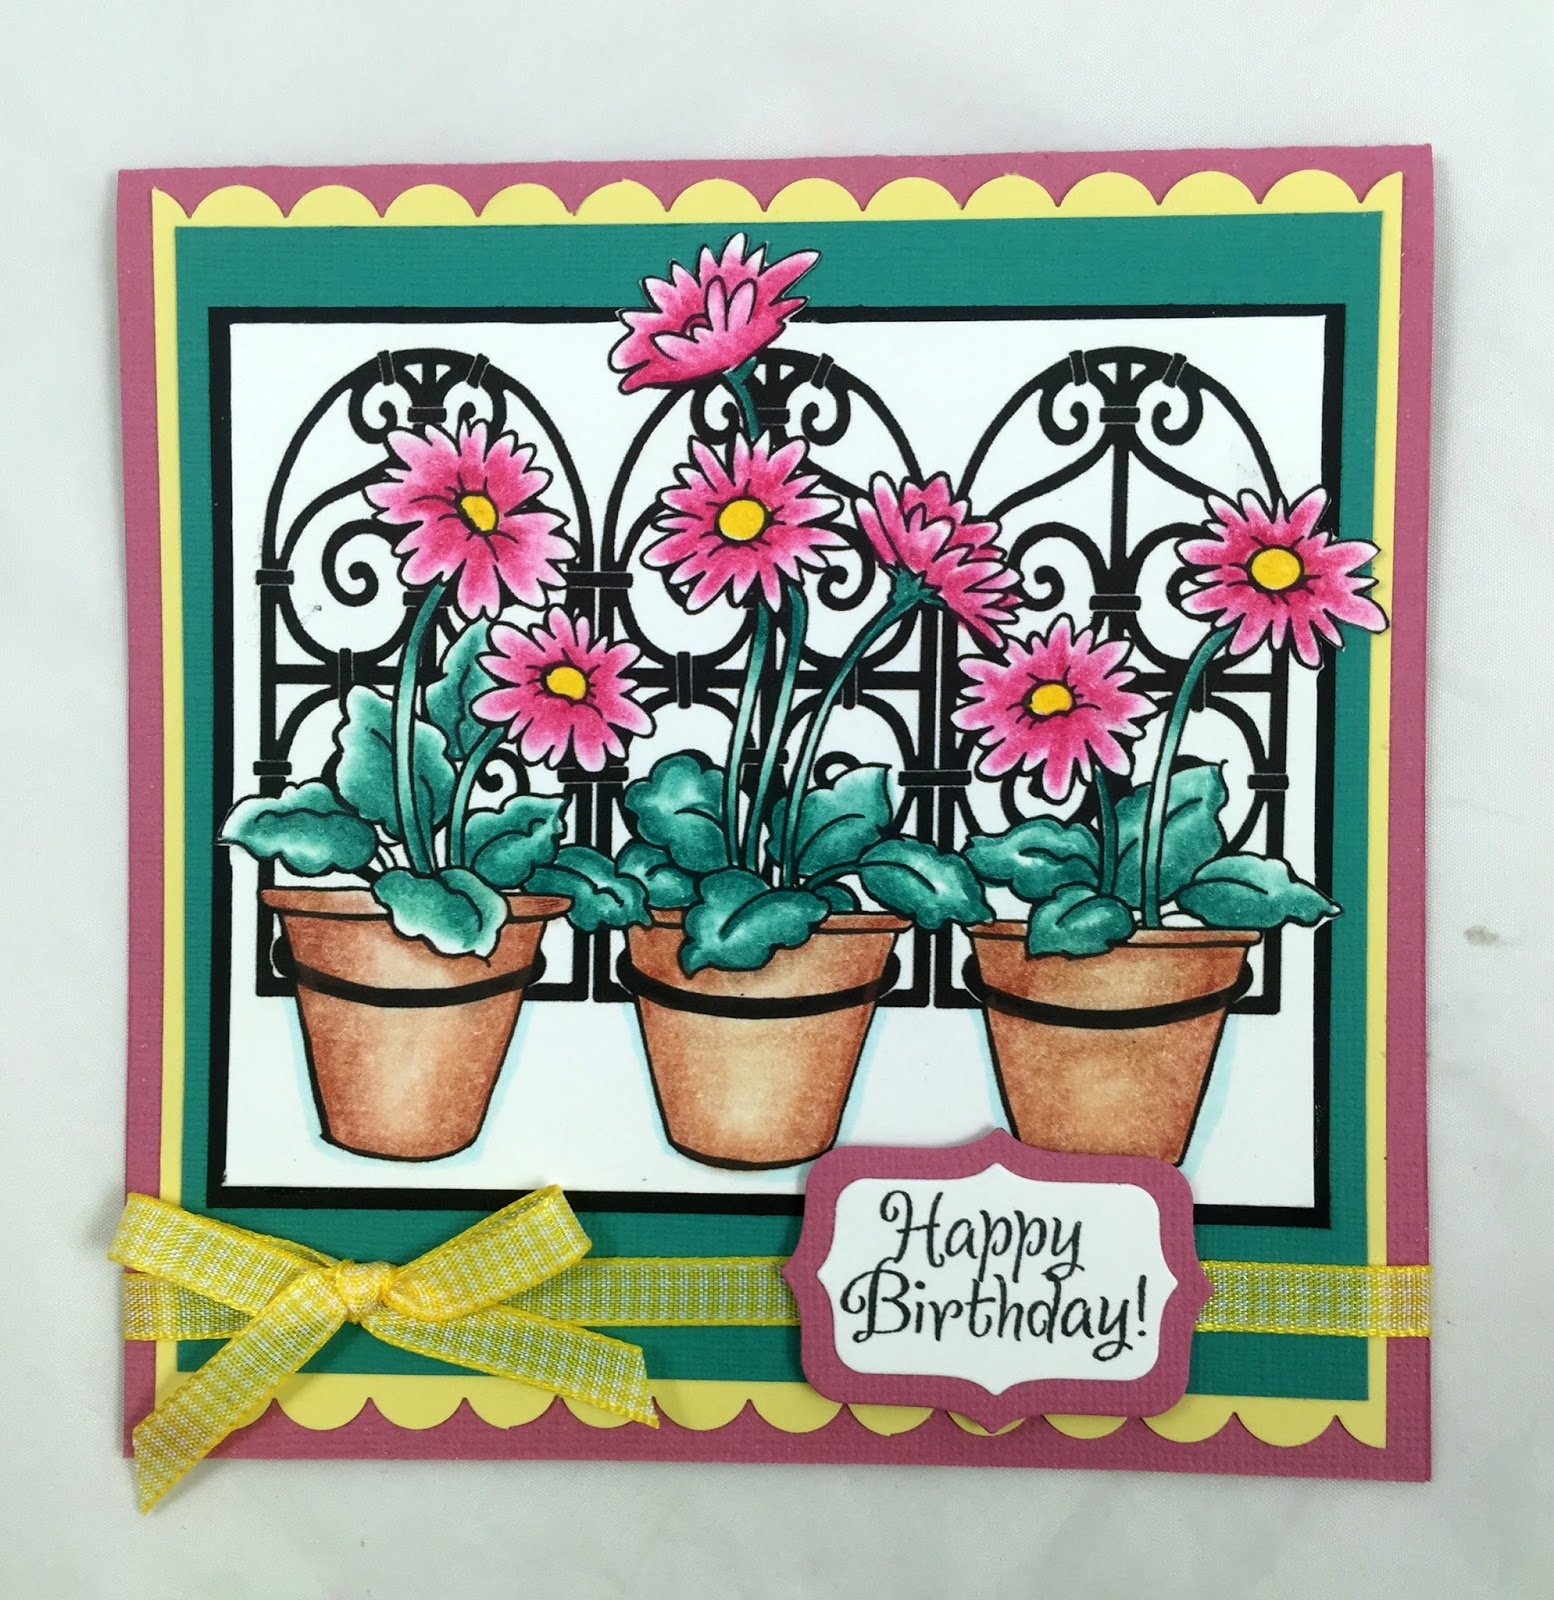 Stamping & Scrapping In California: Three Daisies